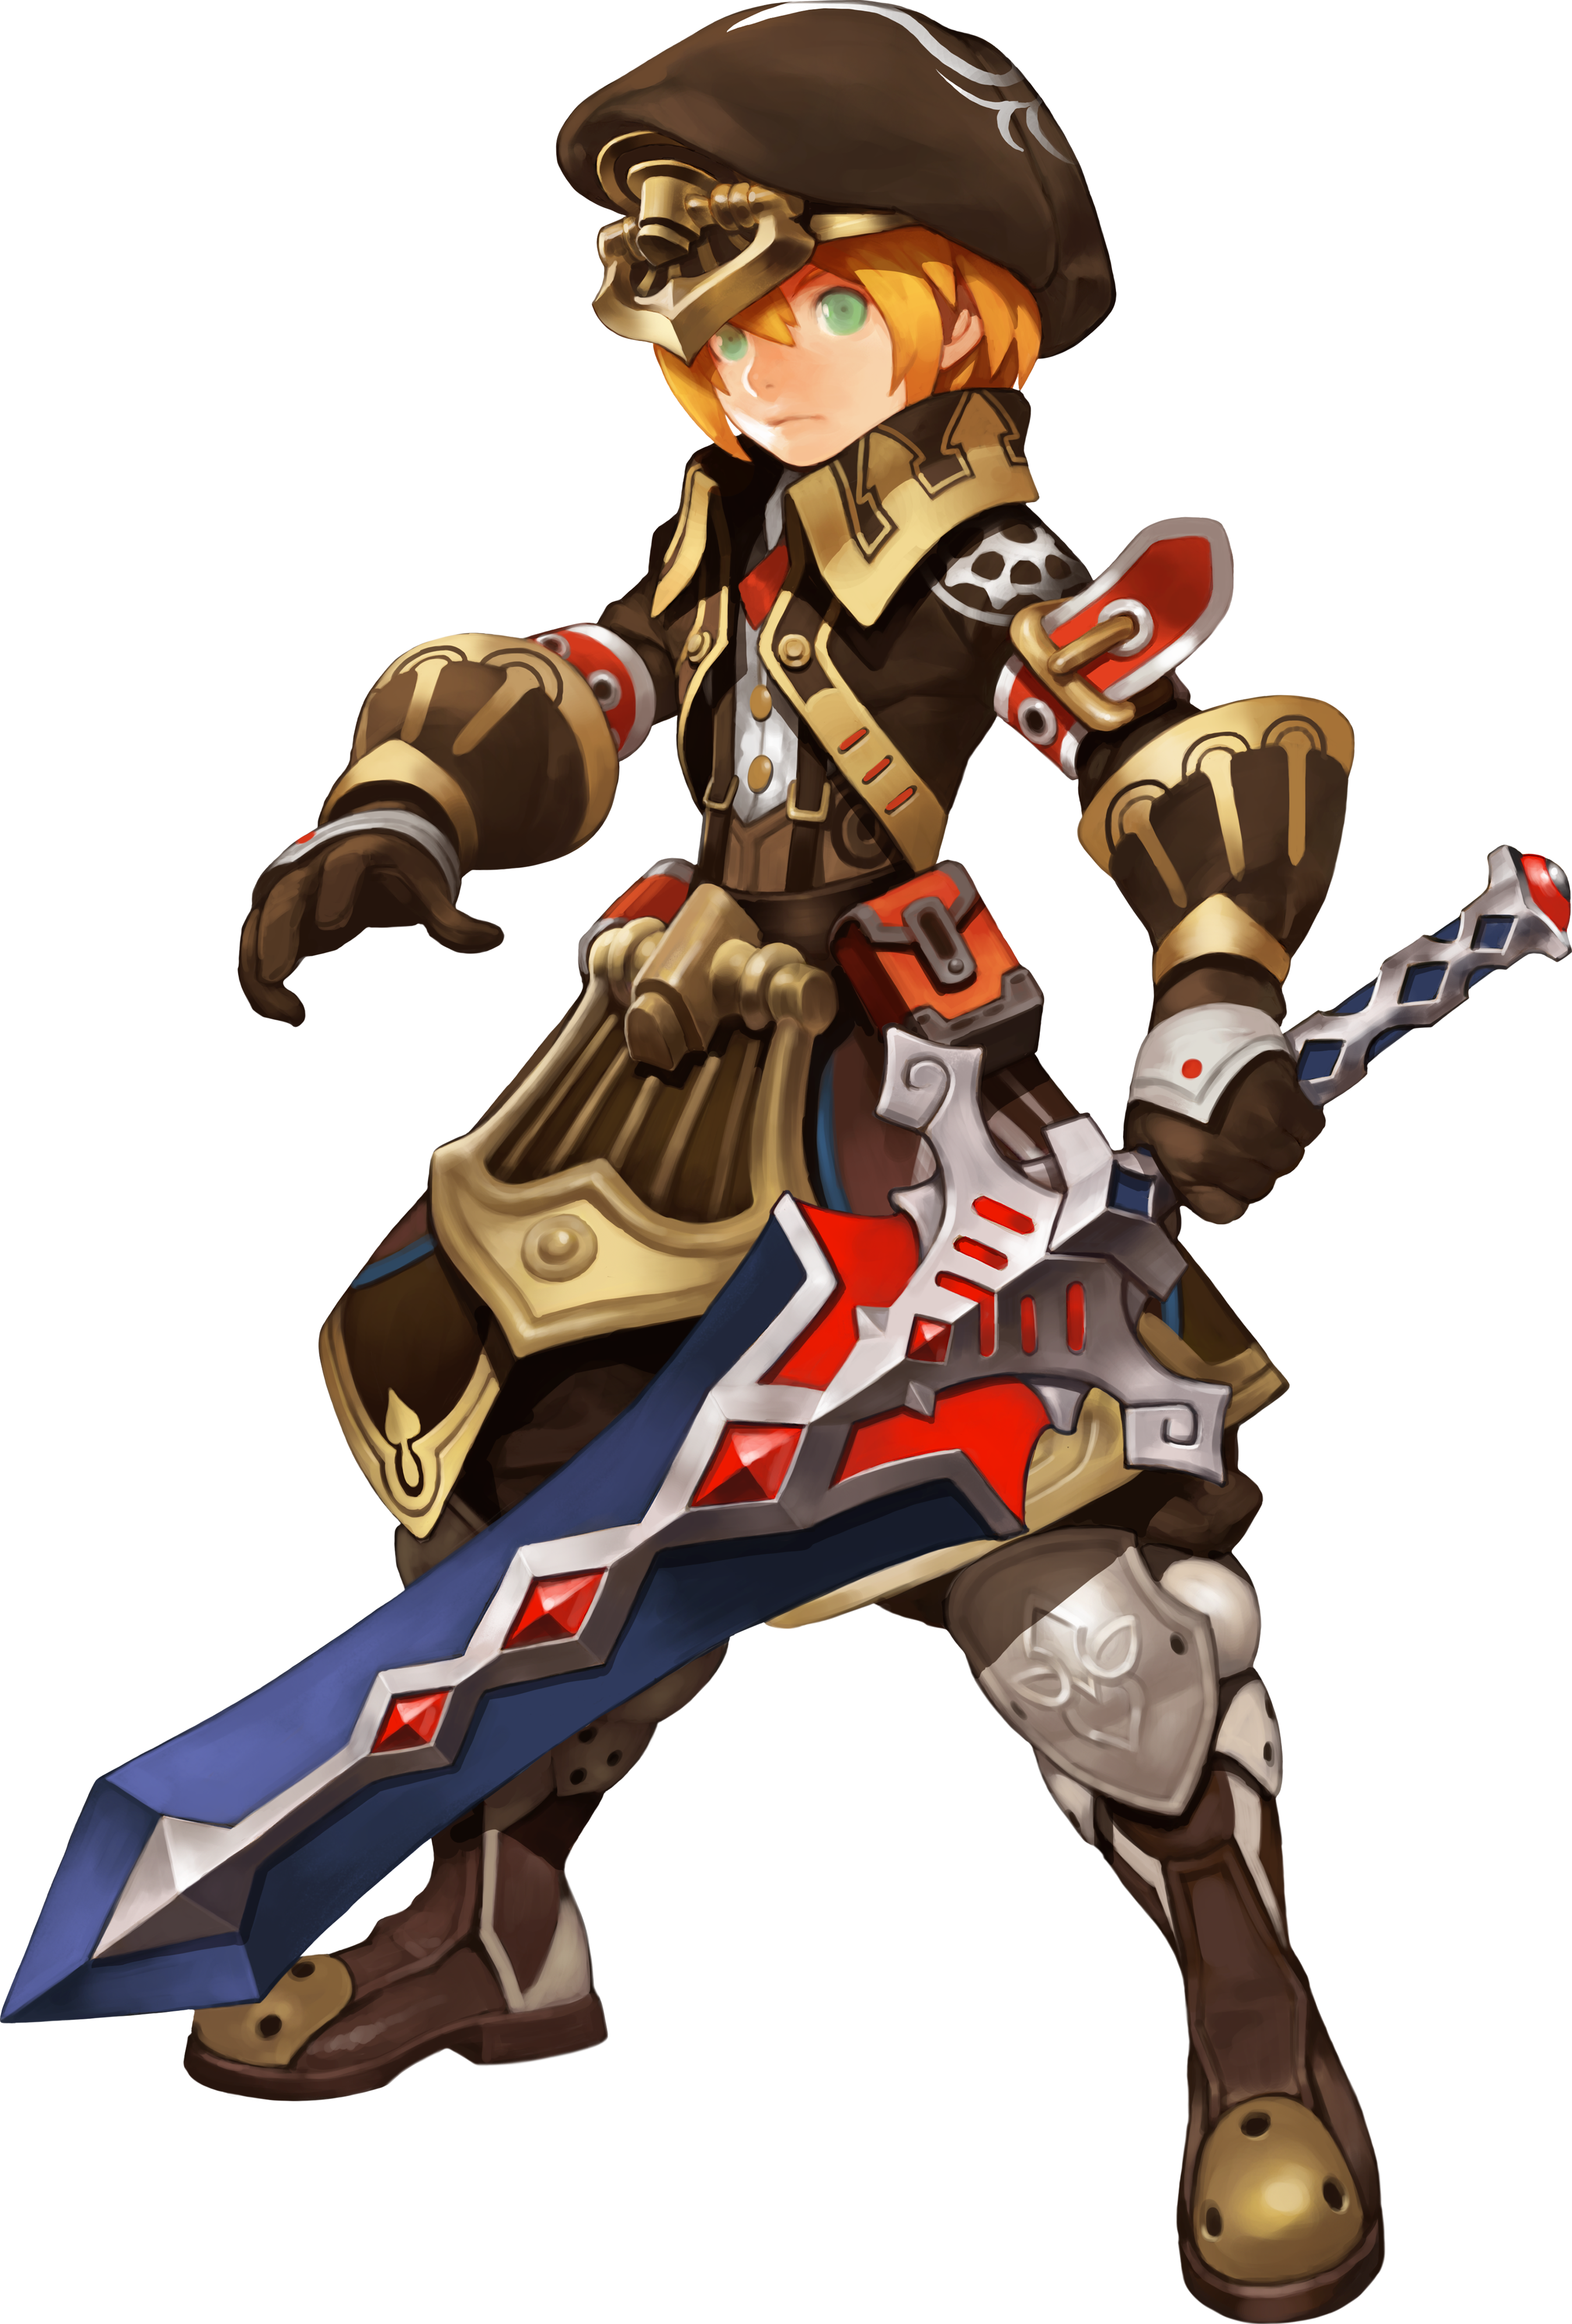 Http Vignette1 Wikia Nocookie Net Dnsea Images 0 05 Newwarrior Png Revision Latest Cb 20150301062748 Dragon Nest Game Character Design Concept Art Characters